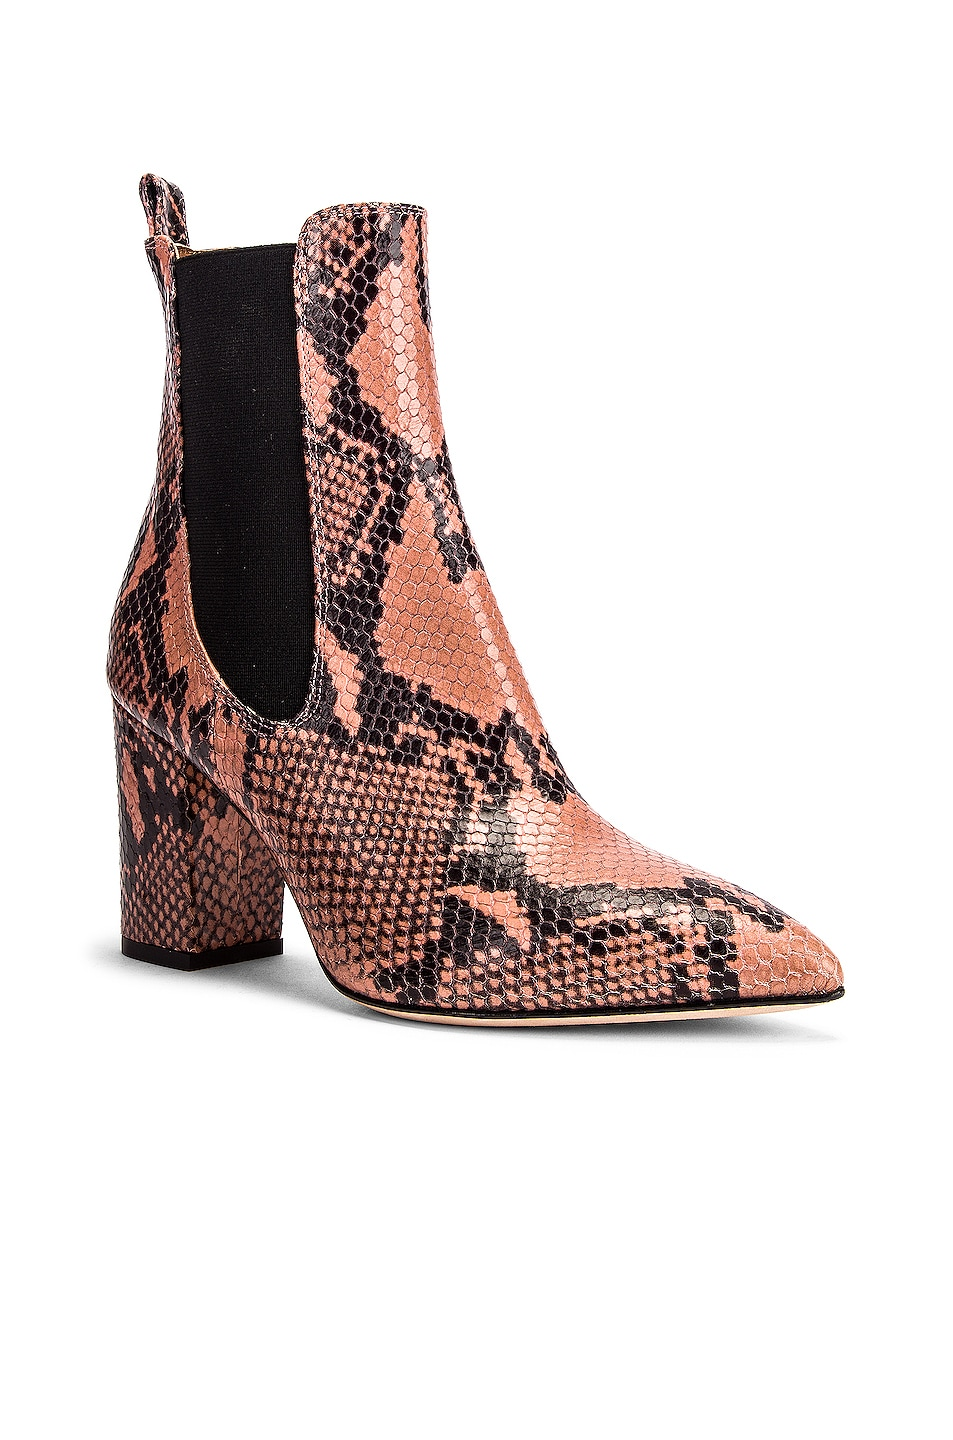 Image 2 of Paris Texas Python Print Ankle Boot in Blush